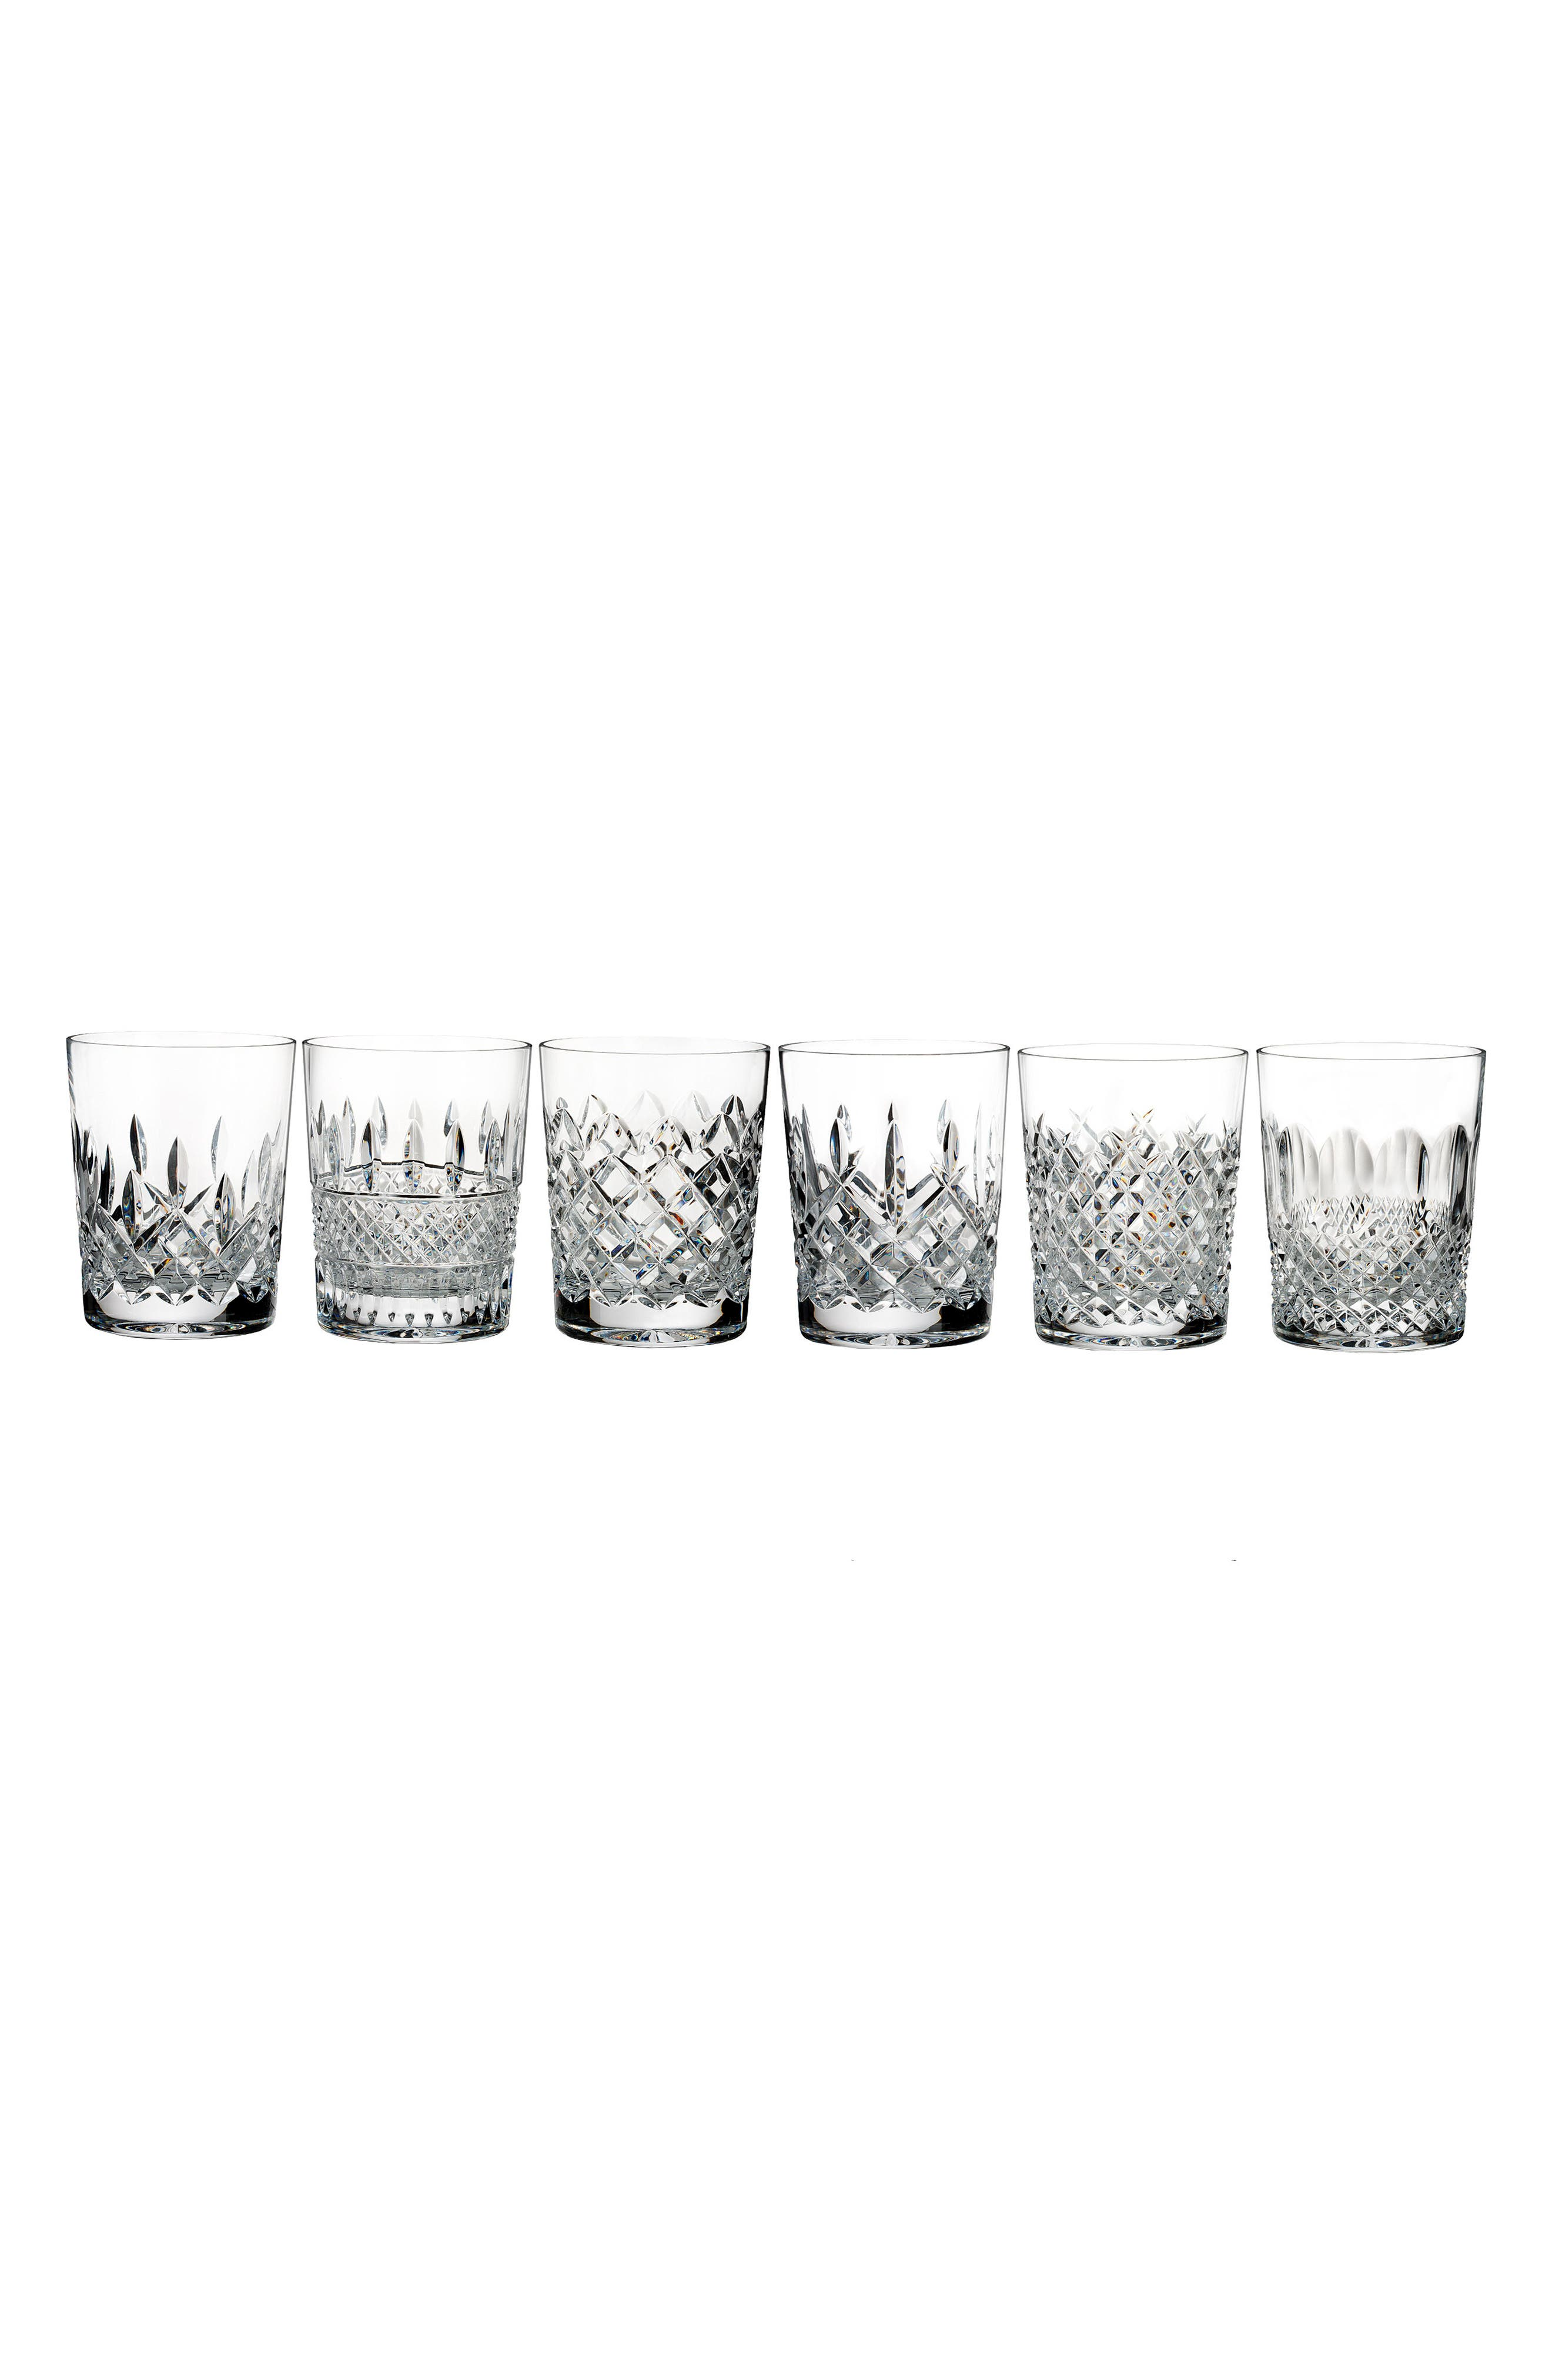 Waterford Connoisseur Set of 6 Lead Crystal Double Old Fashioned Glasses